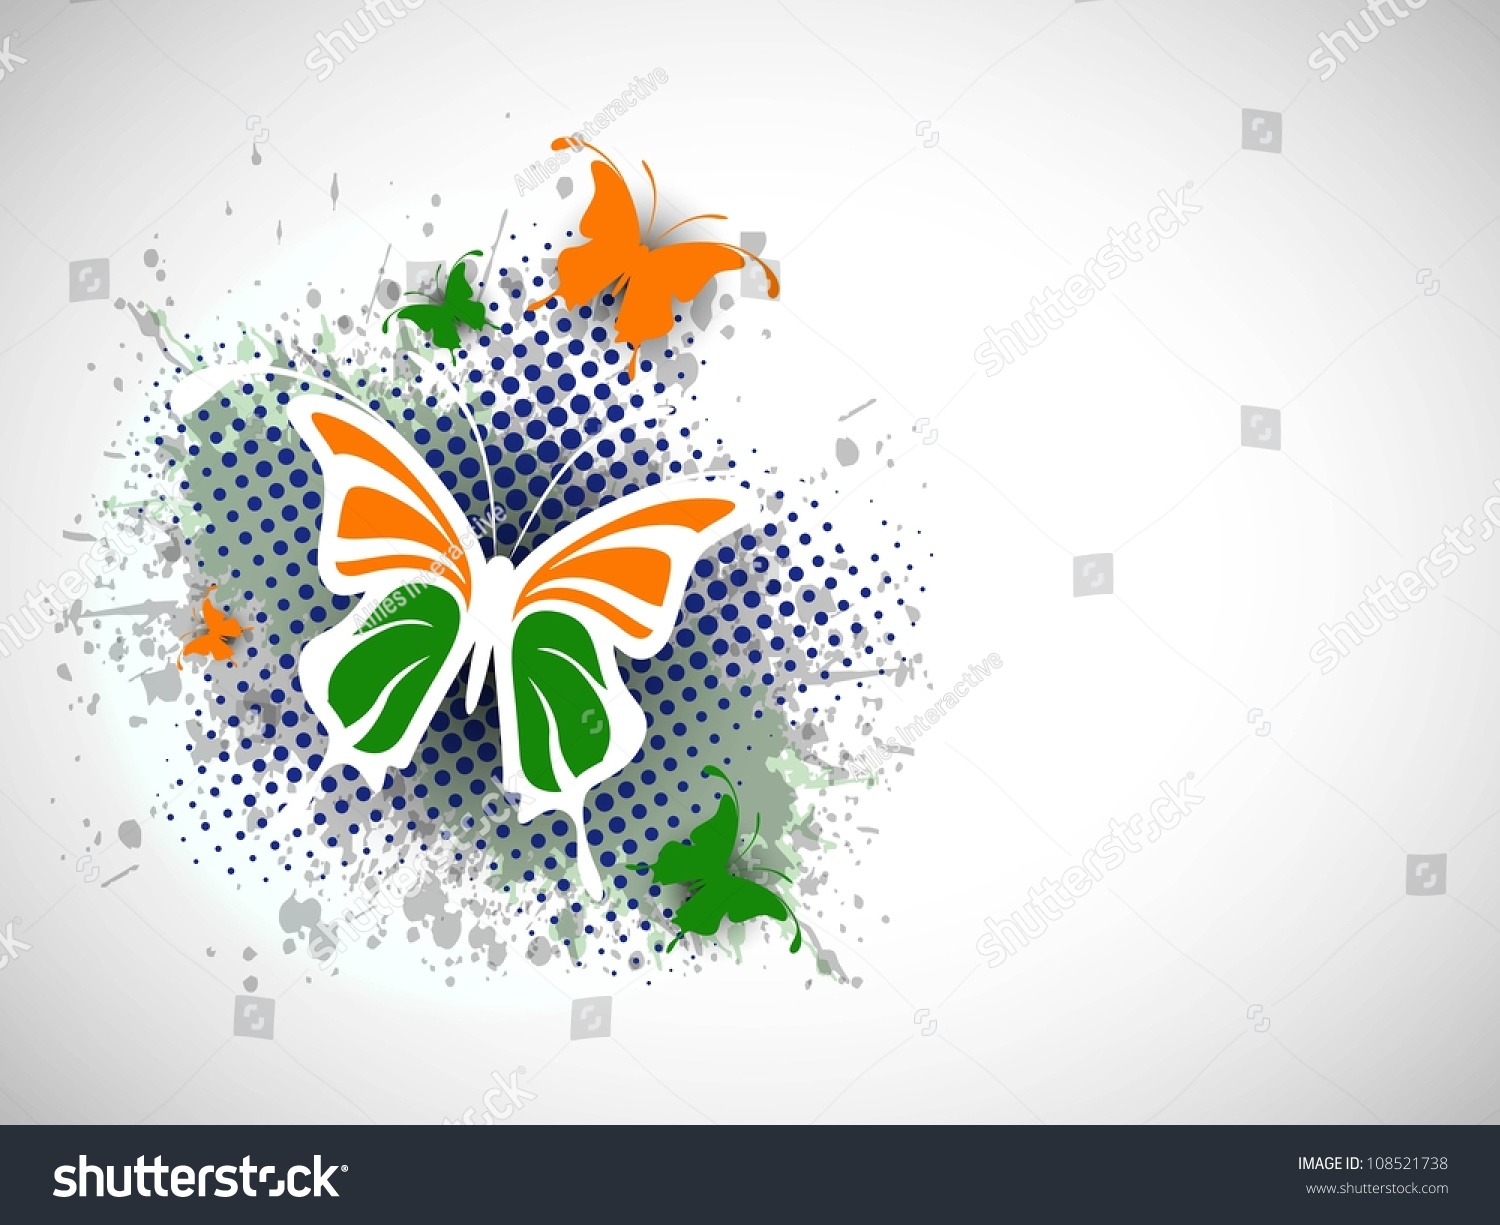 Indian Flag Butterflies: Indian Flag Butterfly On Creative Background. Eps 10